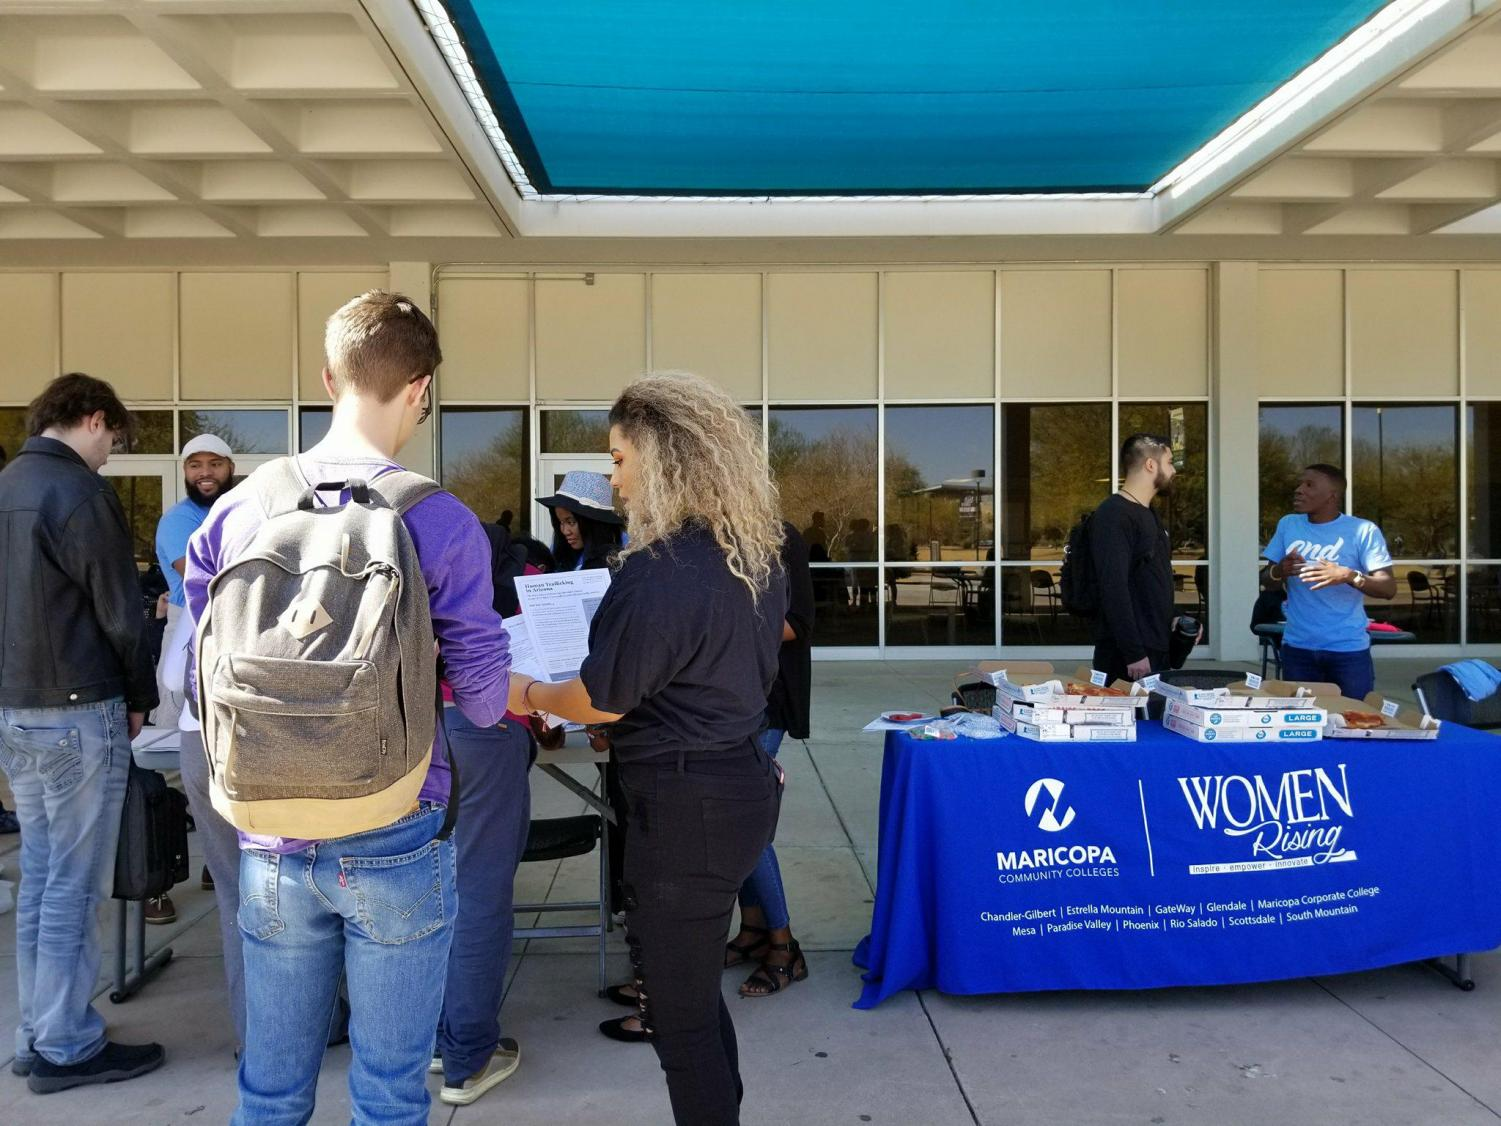 Students gathered around the human trafficking awareness event tables outside of the student center.